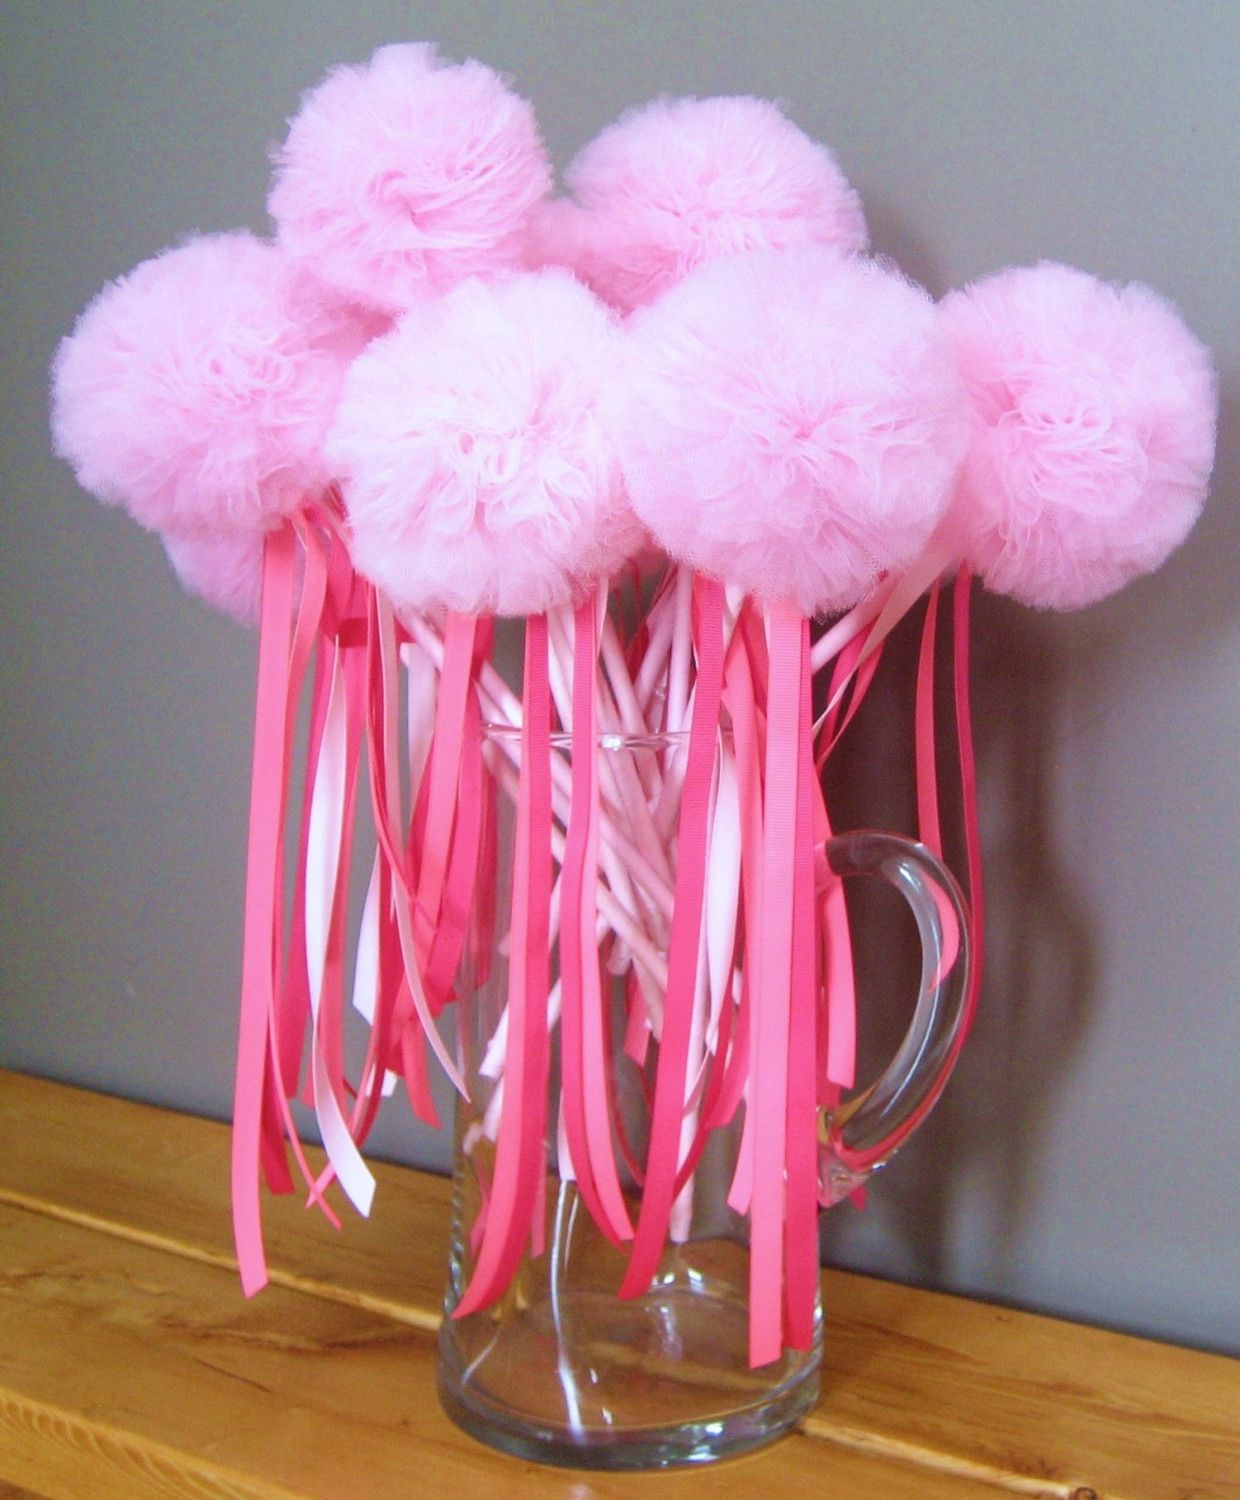 Diy fairy wands favor for birthday party create a for Birthday wand